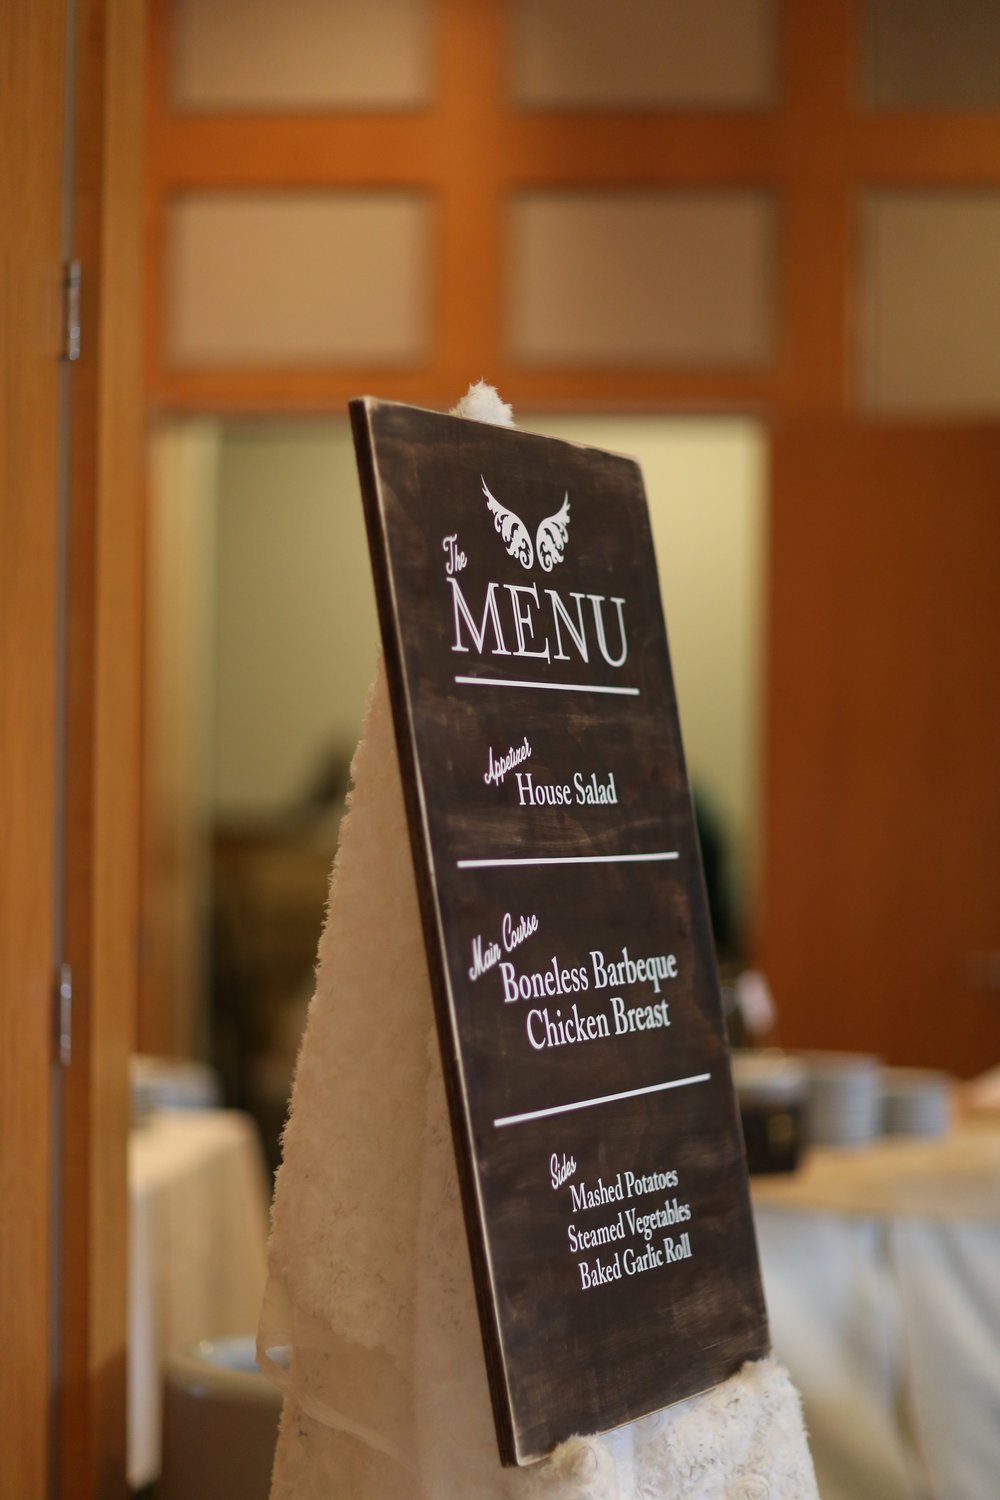 Hand crafted Menu sign also by my brother, Petra Pream